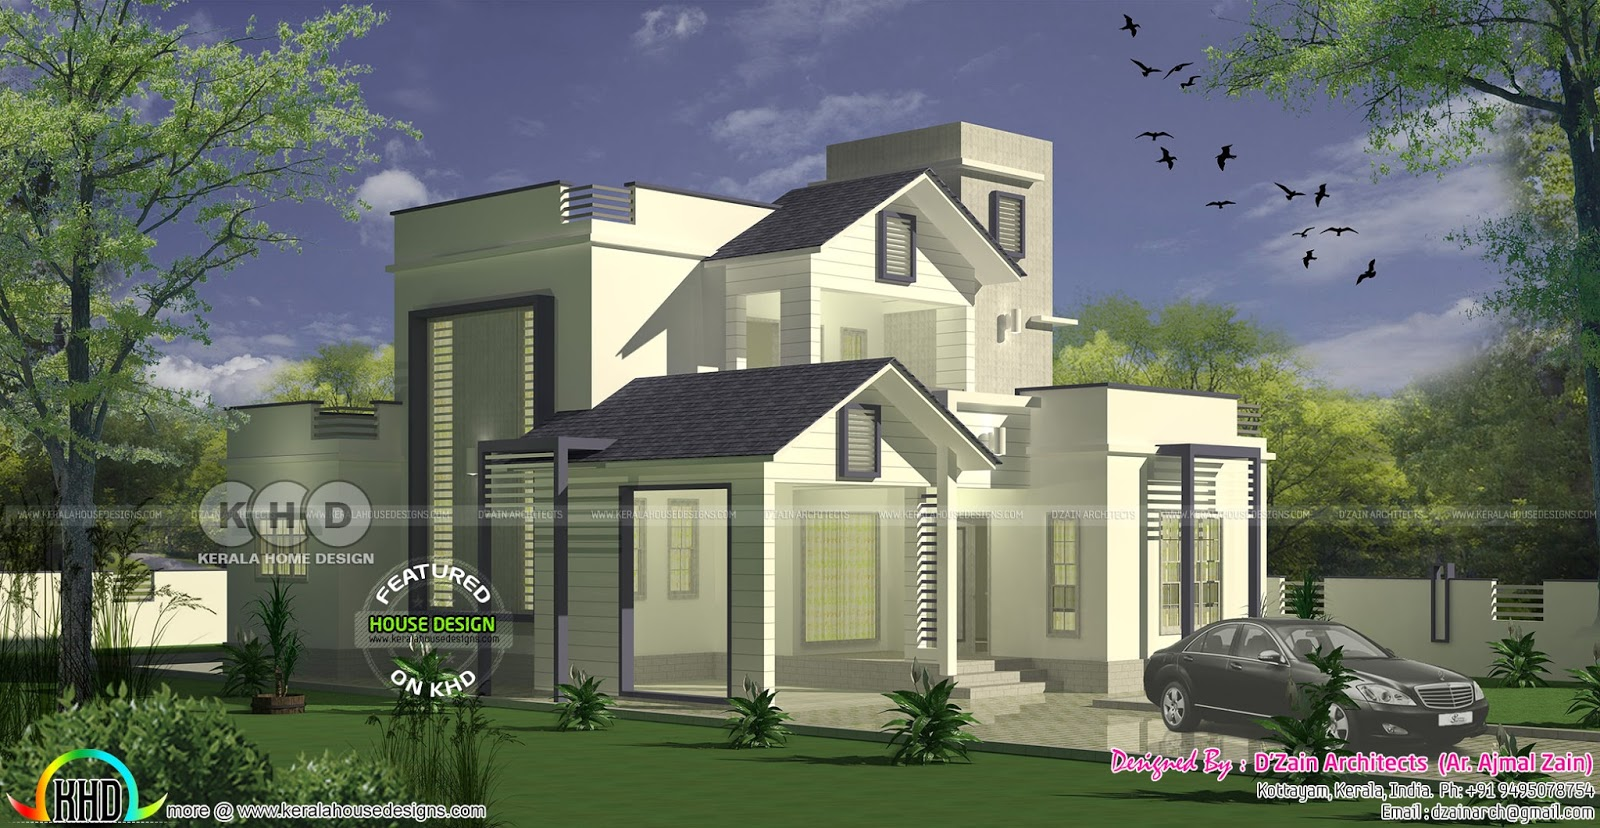 Home Interior Design Kottayam 1640 Sq Ft Budget Friendly Double Storied Home Kerala